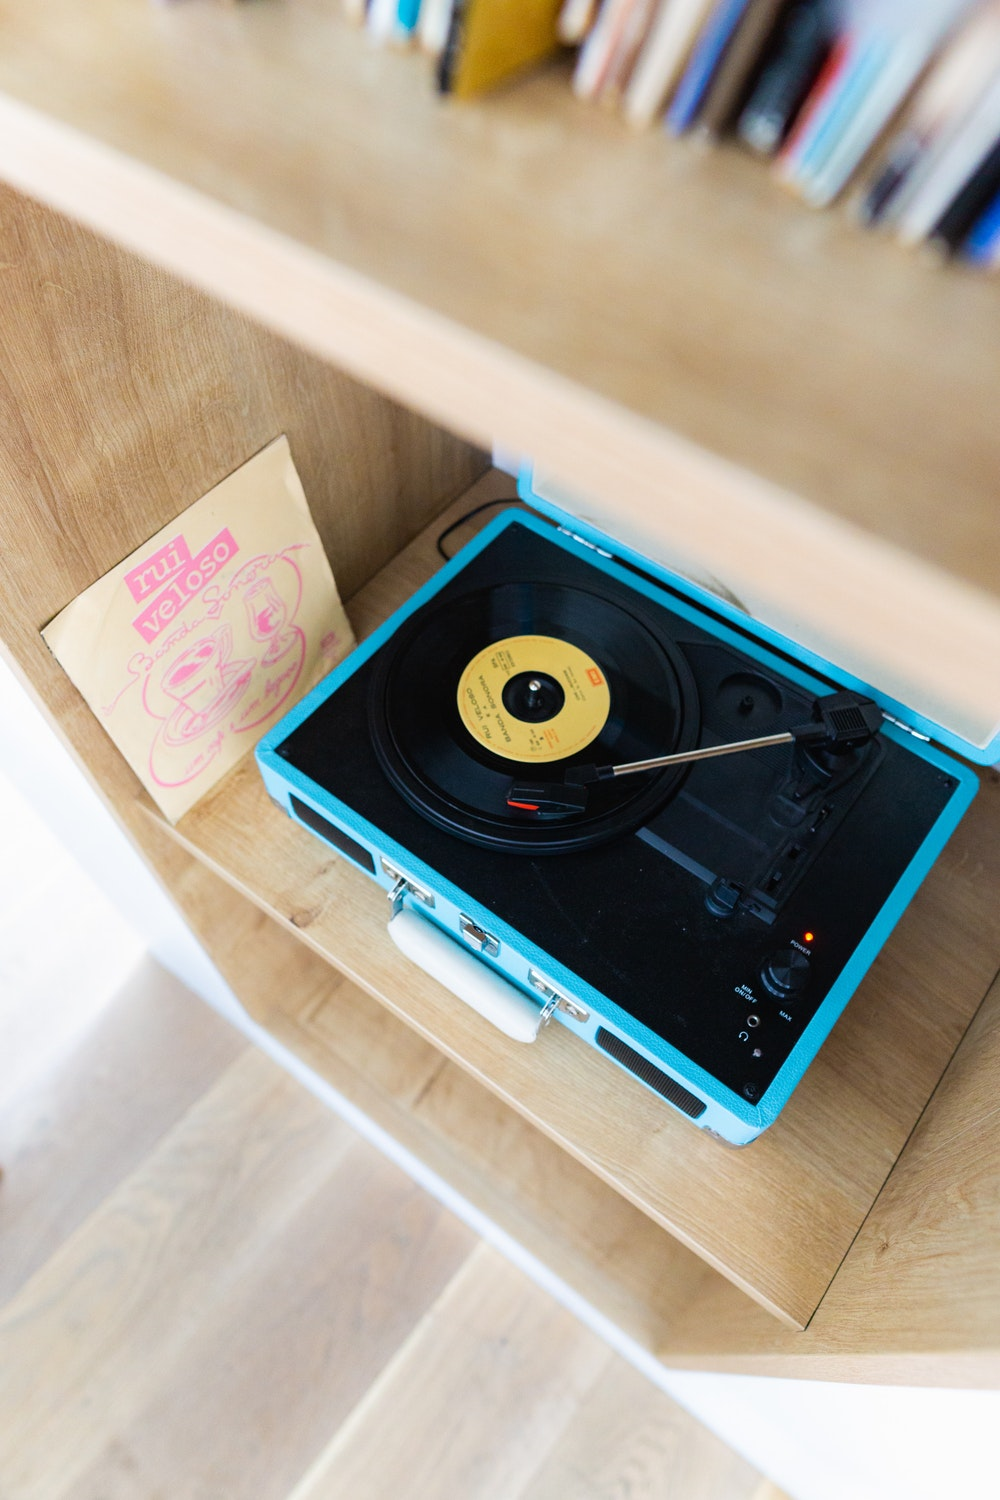 Vintage record player in the penthouse suite of The Lisboans in Lisbon, Portugal